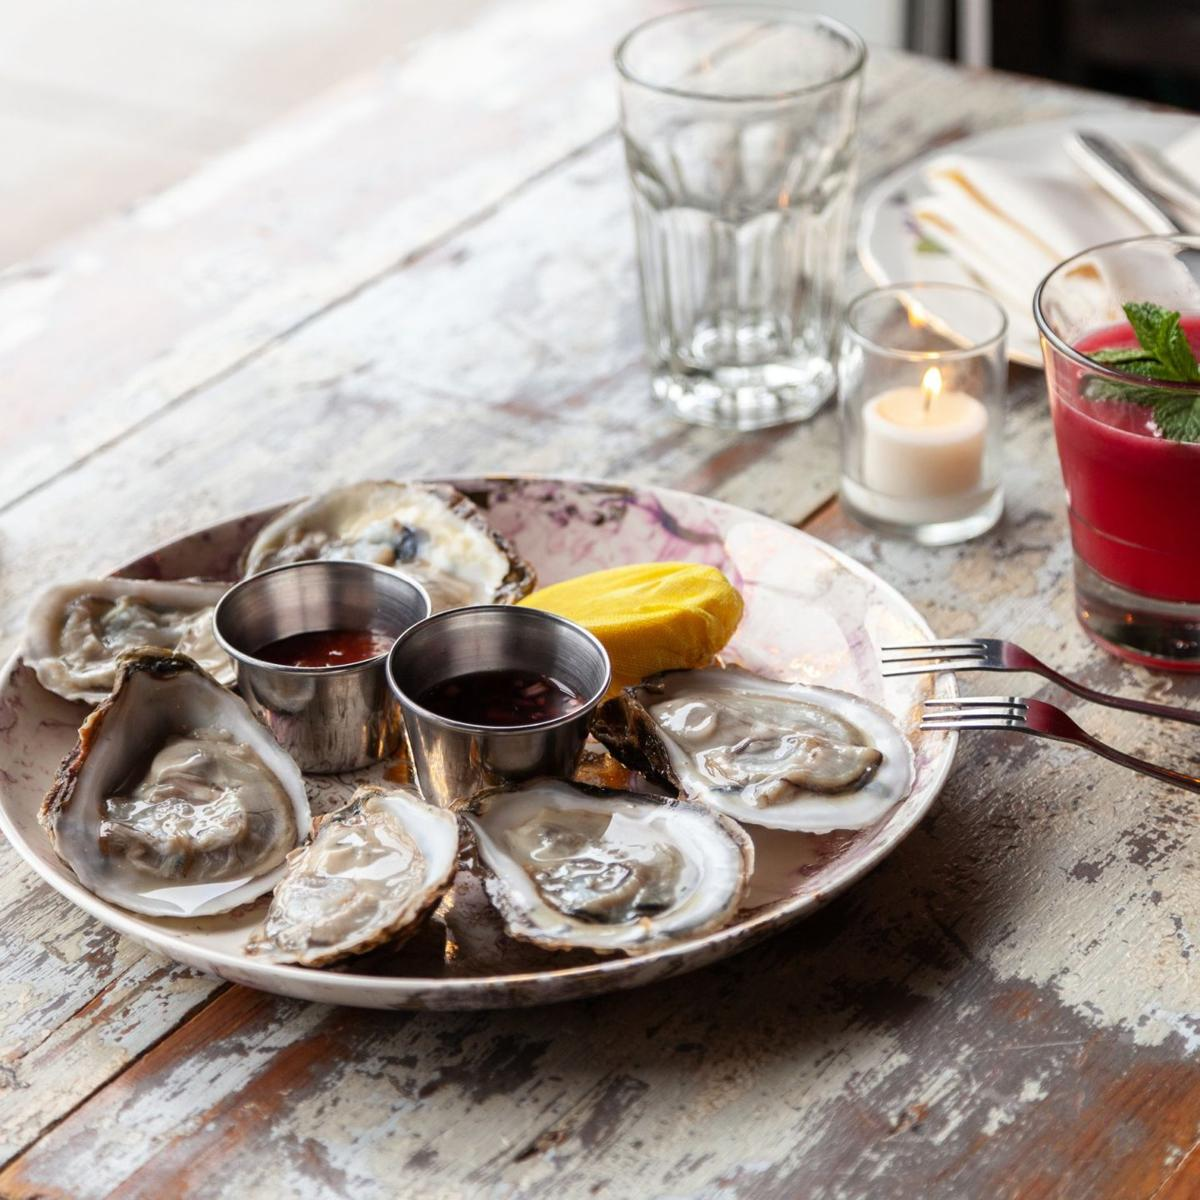 1/2 Priced Oysters